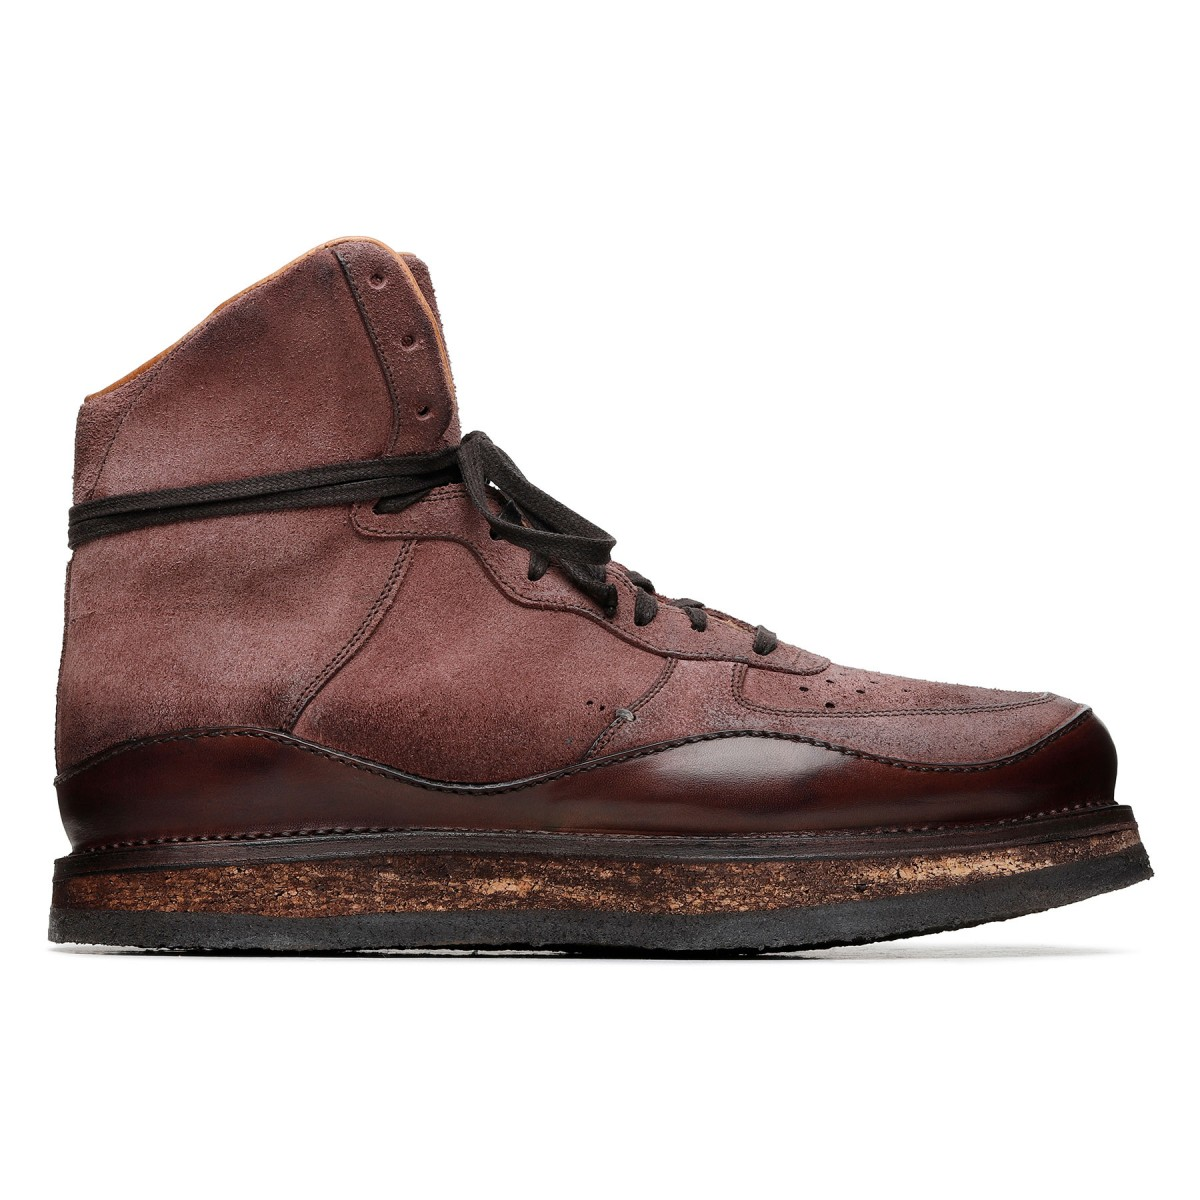 Tokyo suede leather ankle boots